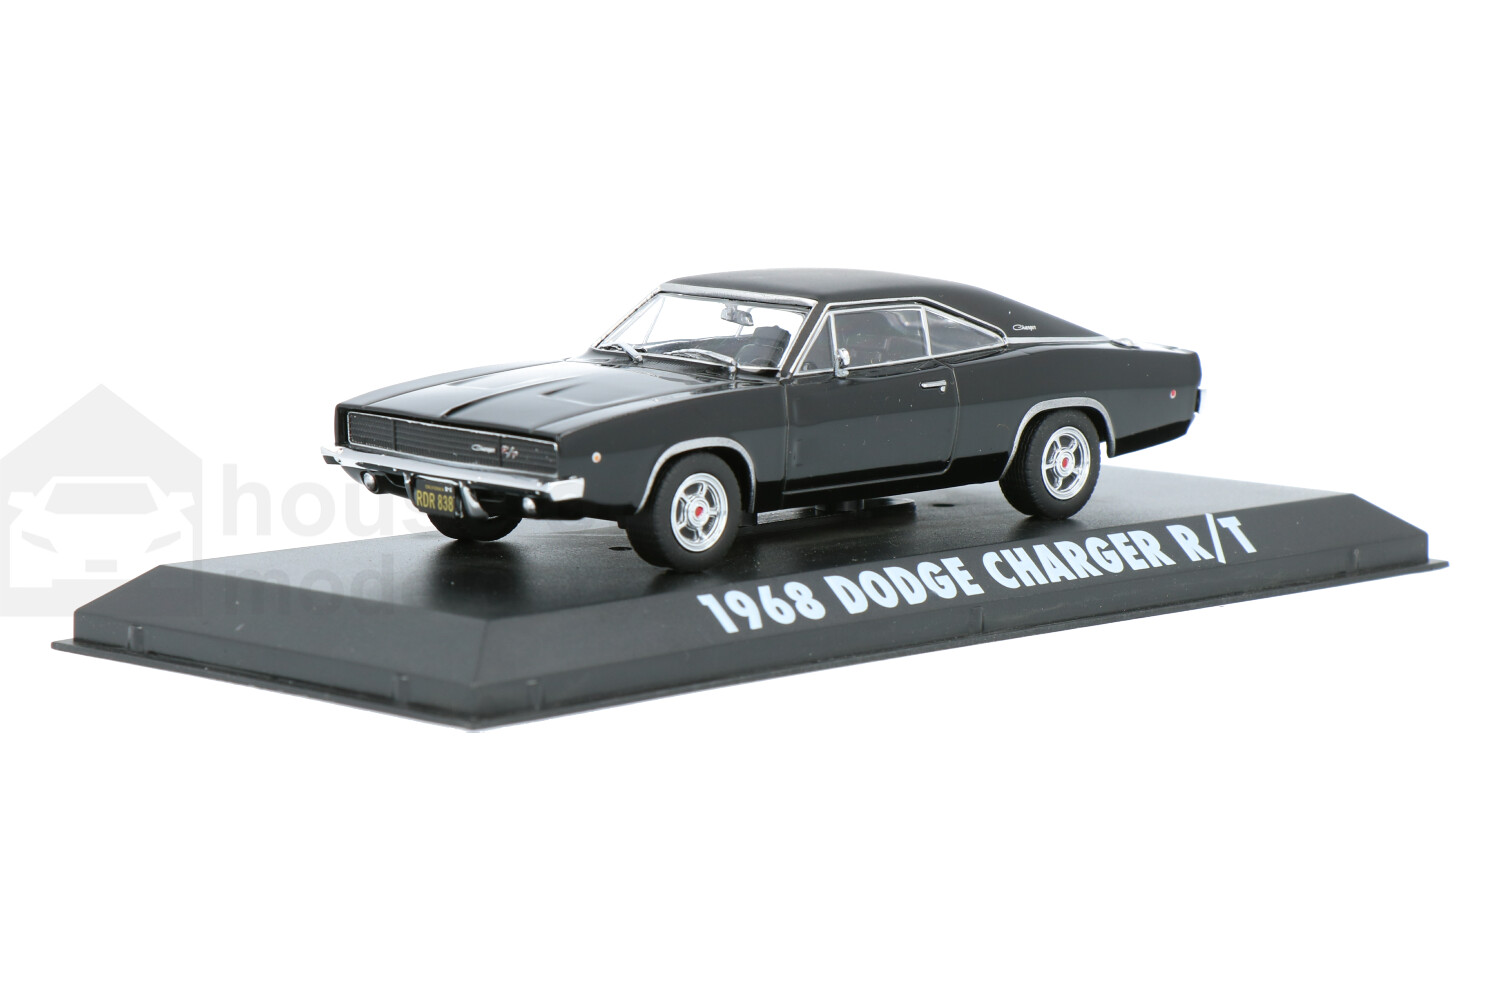 Dodge Charger R/T - Modelauto schaal 1:43